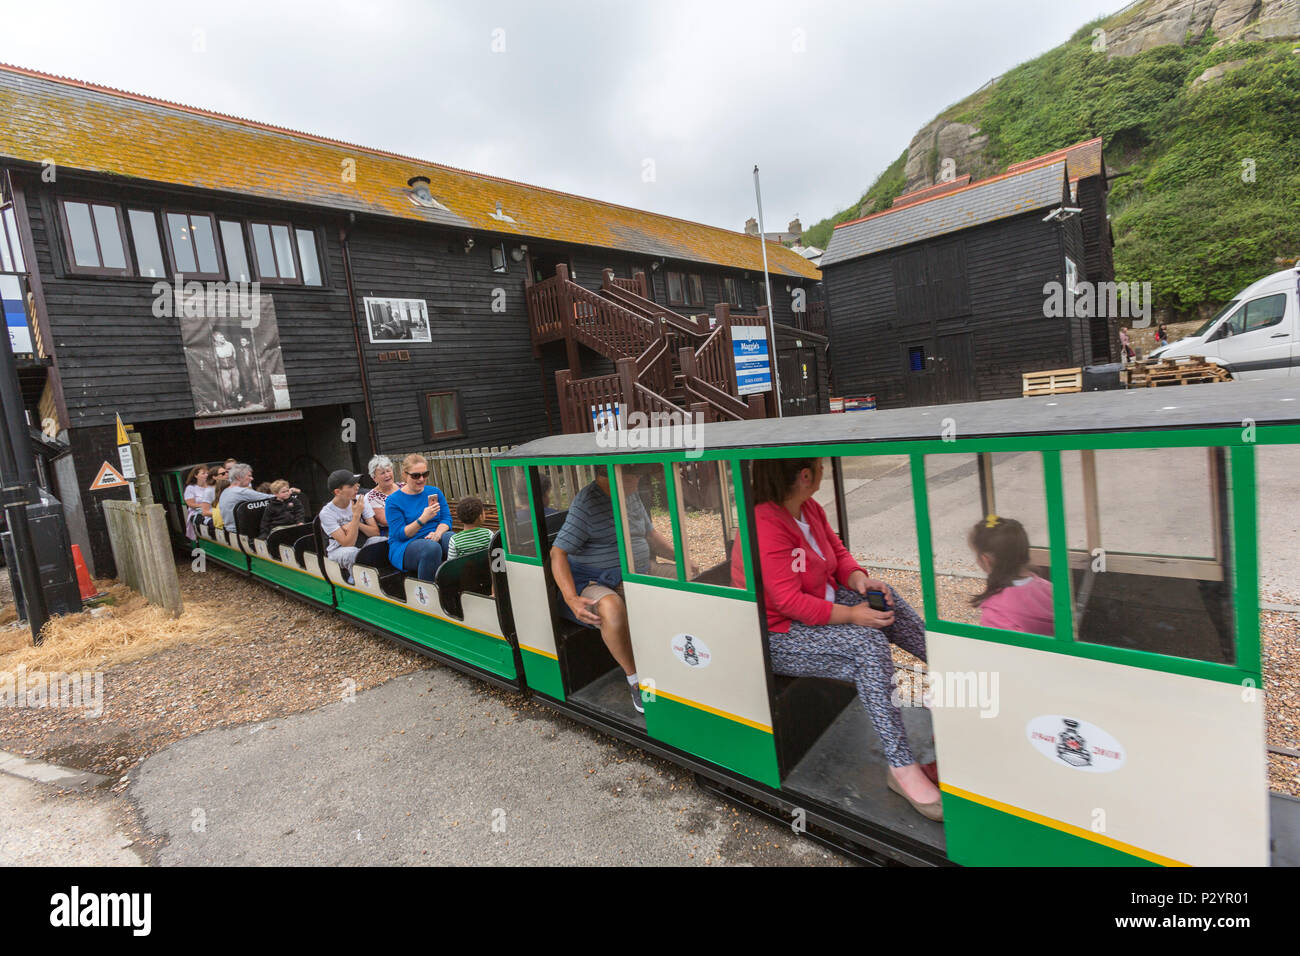 Passengers in Hastings Miniature InterCity Railway. Hastings, East Sussex, England , UK - Stock Image